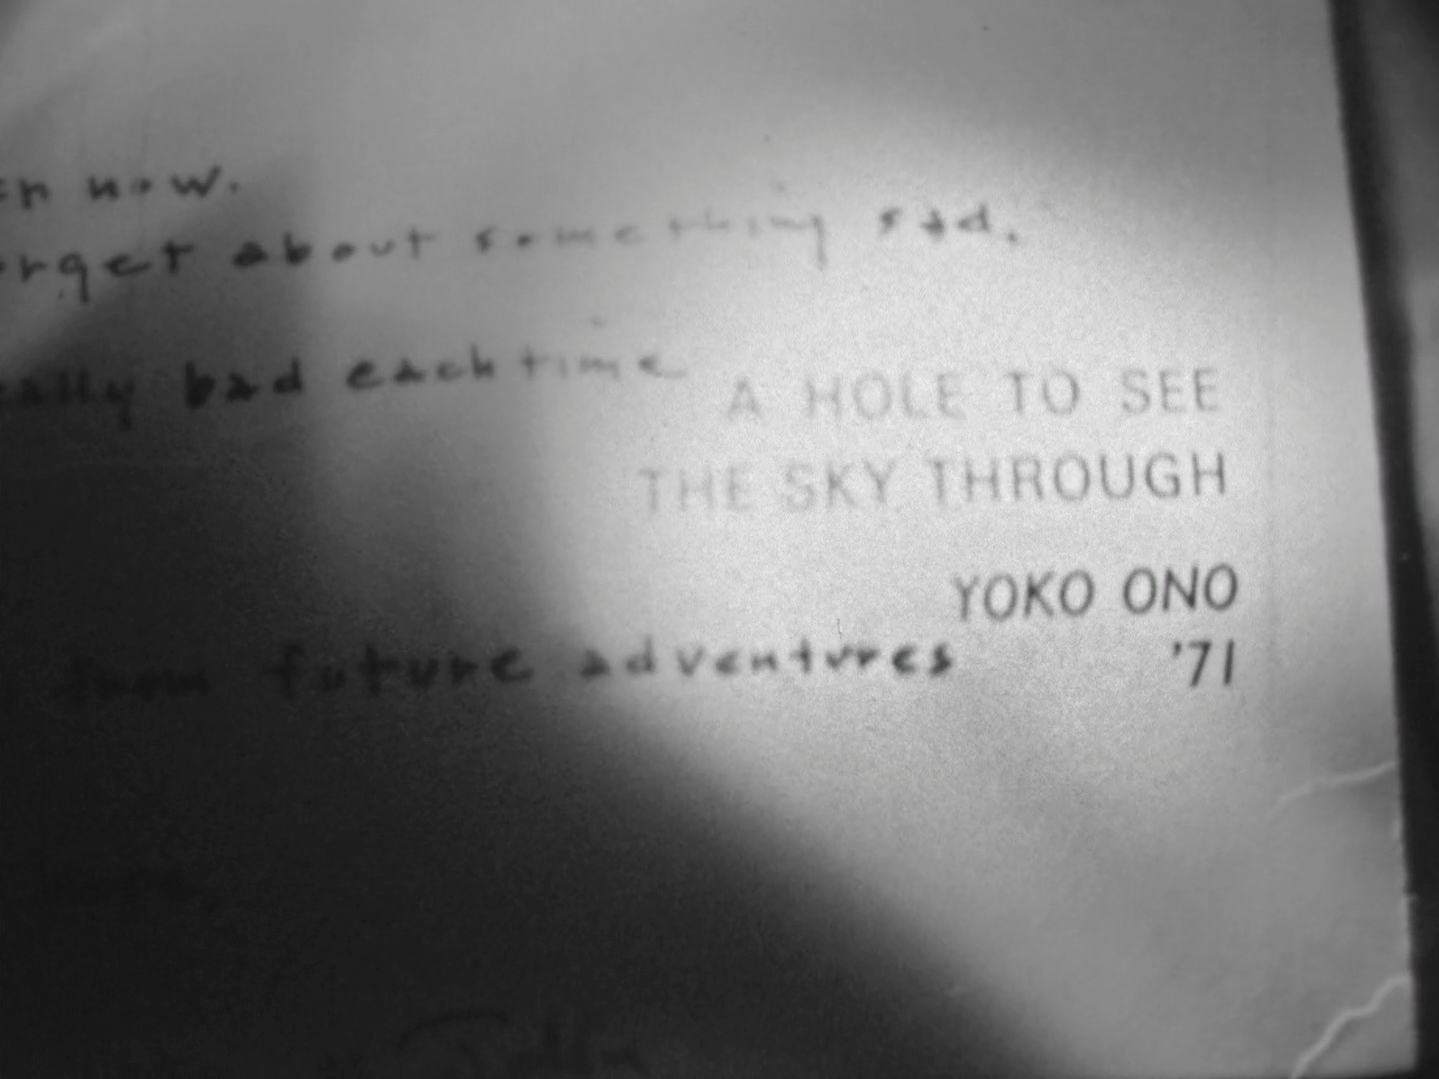 """Free Fall with John and Yoko - After sustaining his injury, Joseph received a hand written card from Yoko and John. It was titled """"A Hole to See the Sky Through"""". A hole was punched out from the center of the card."""